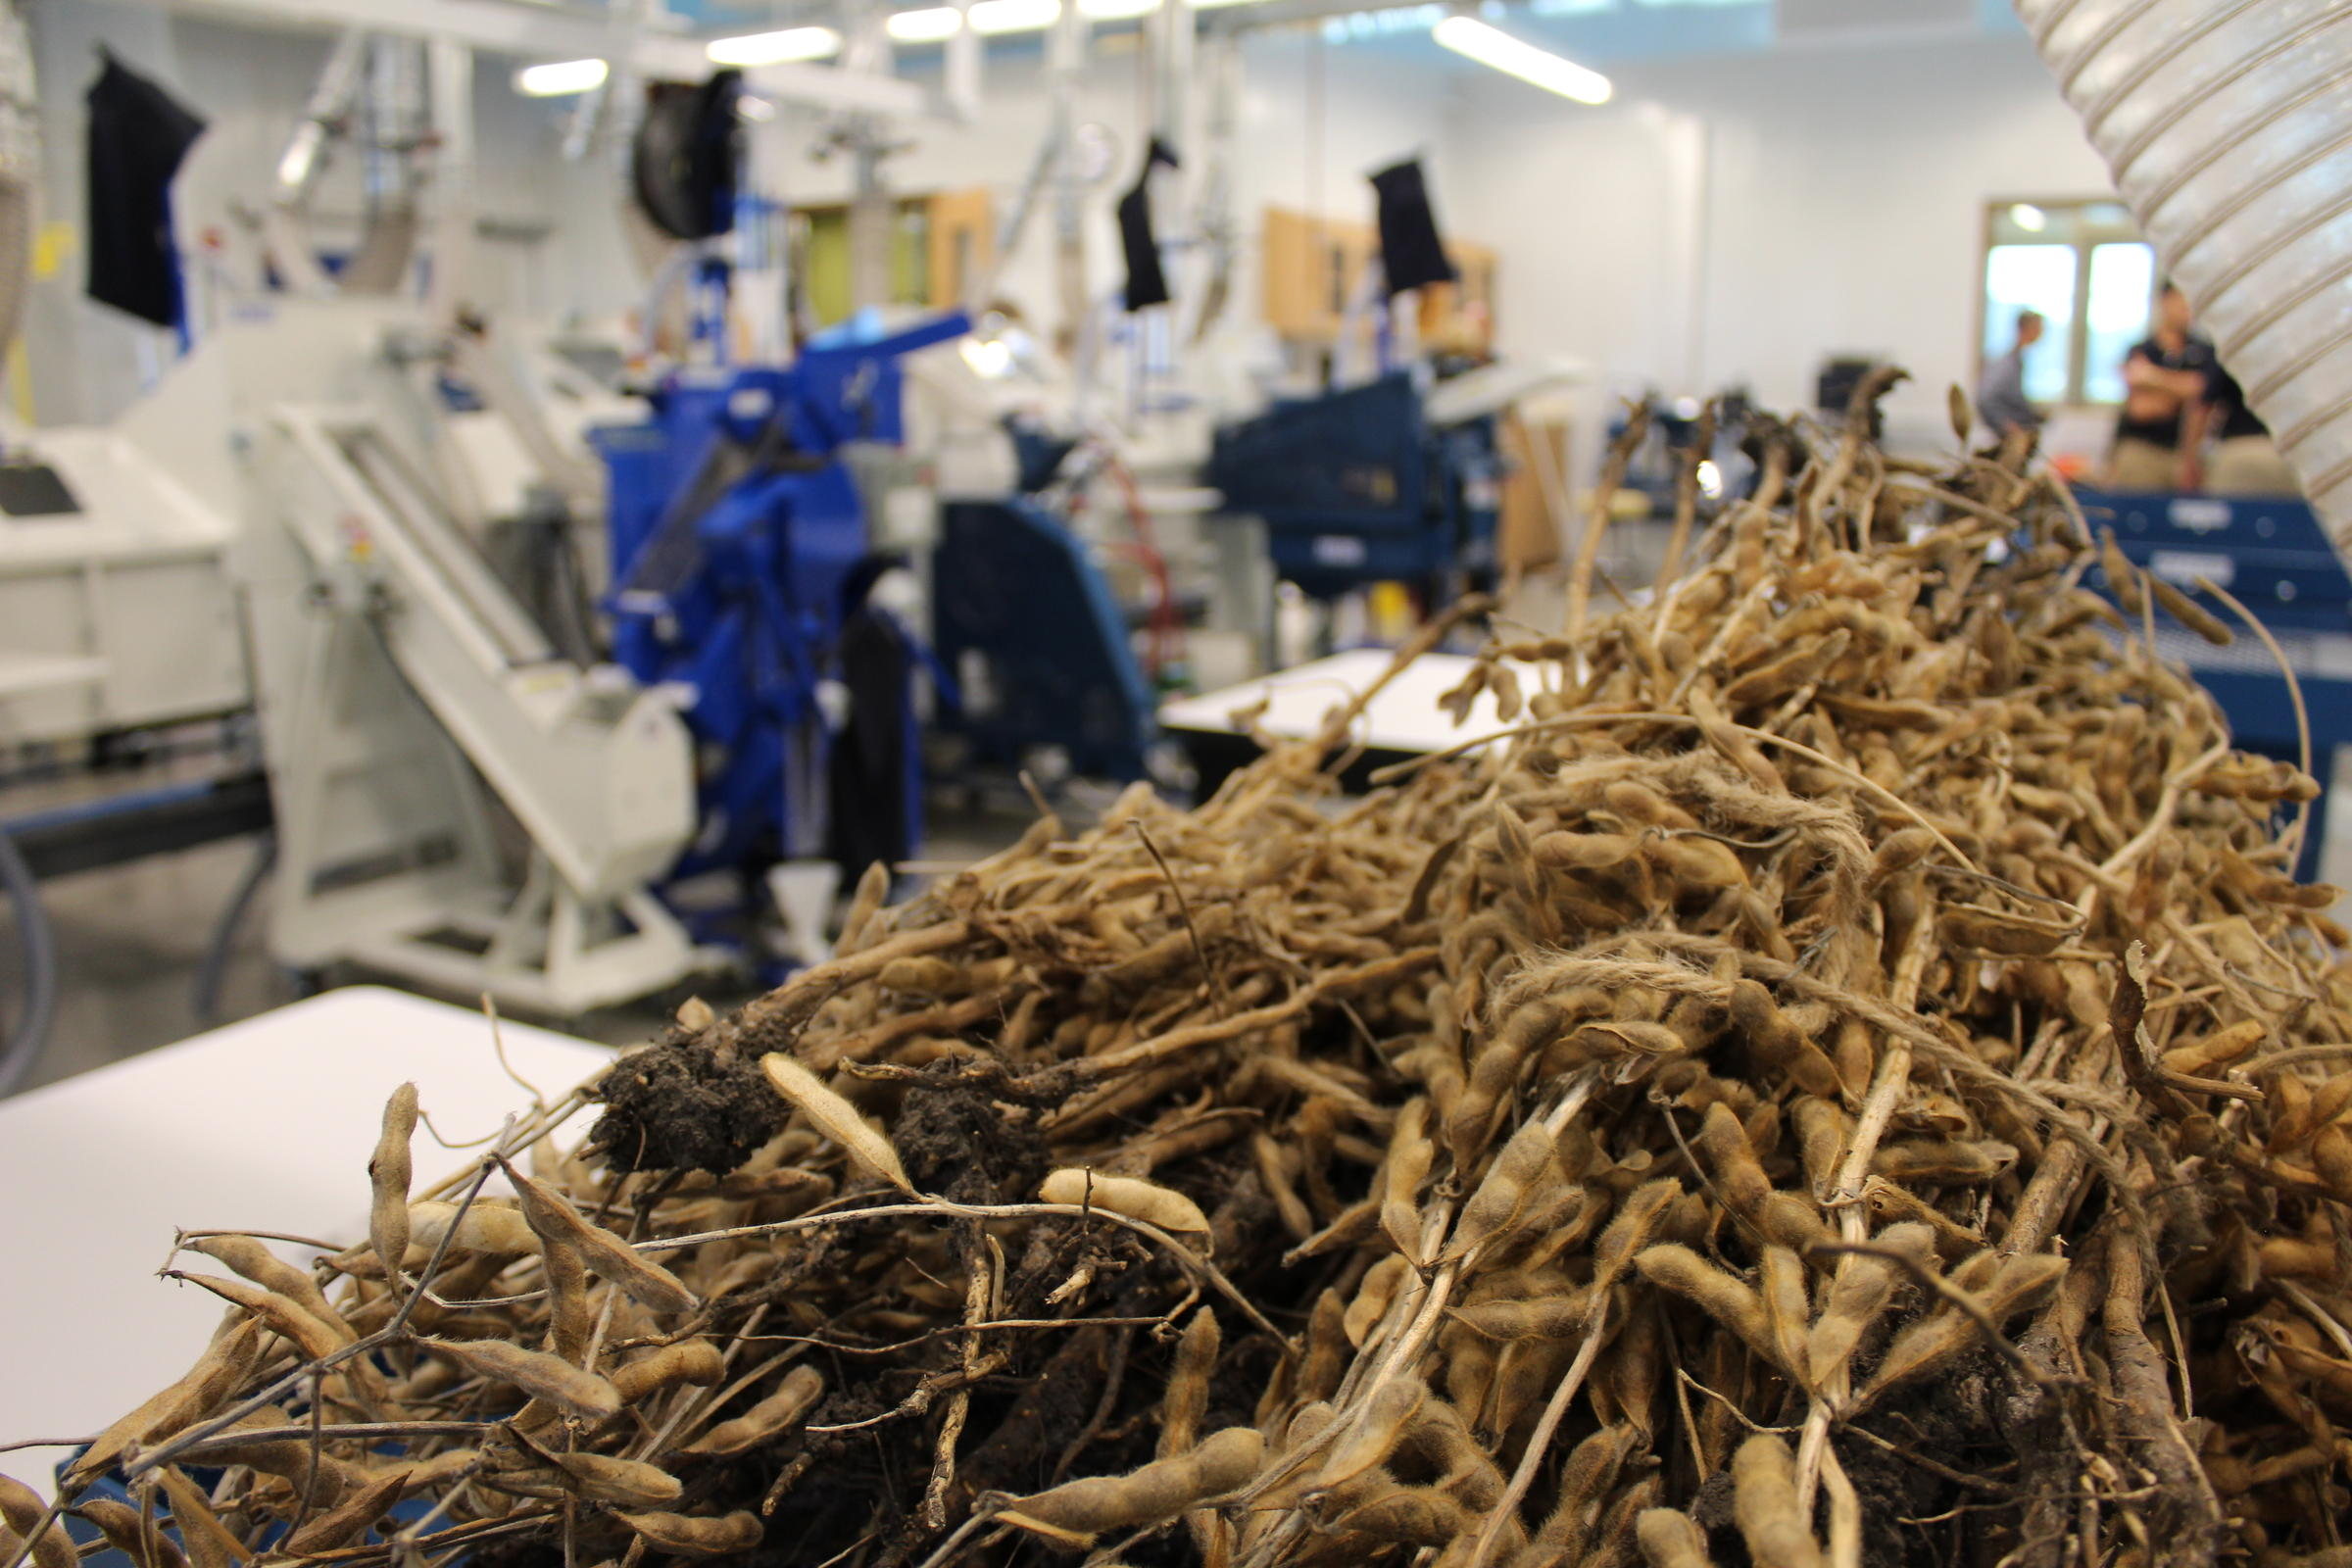 Soybeans wait for threshing at the new Innovation center.